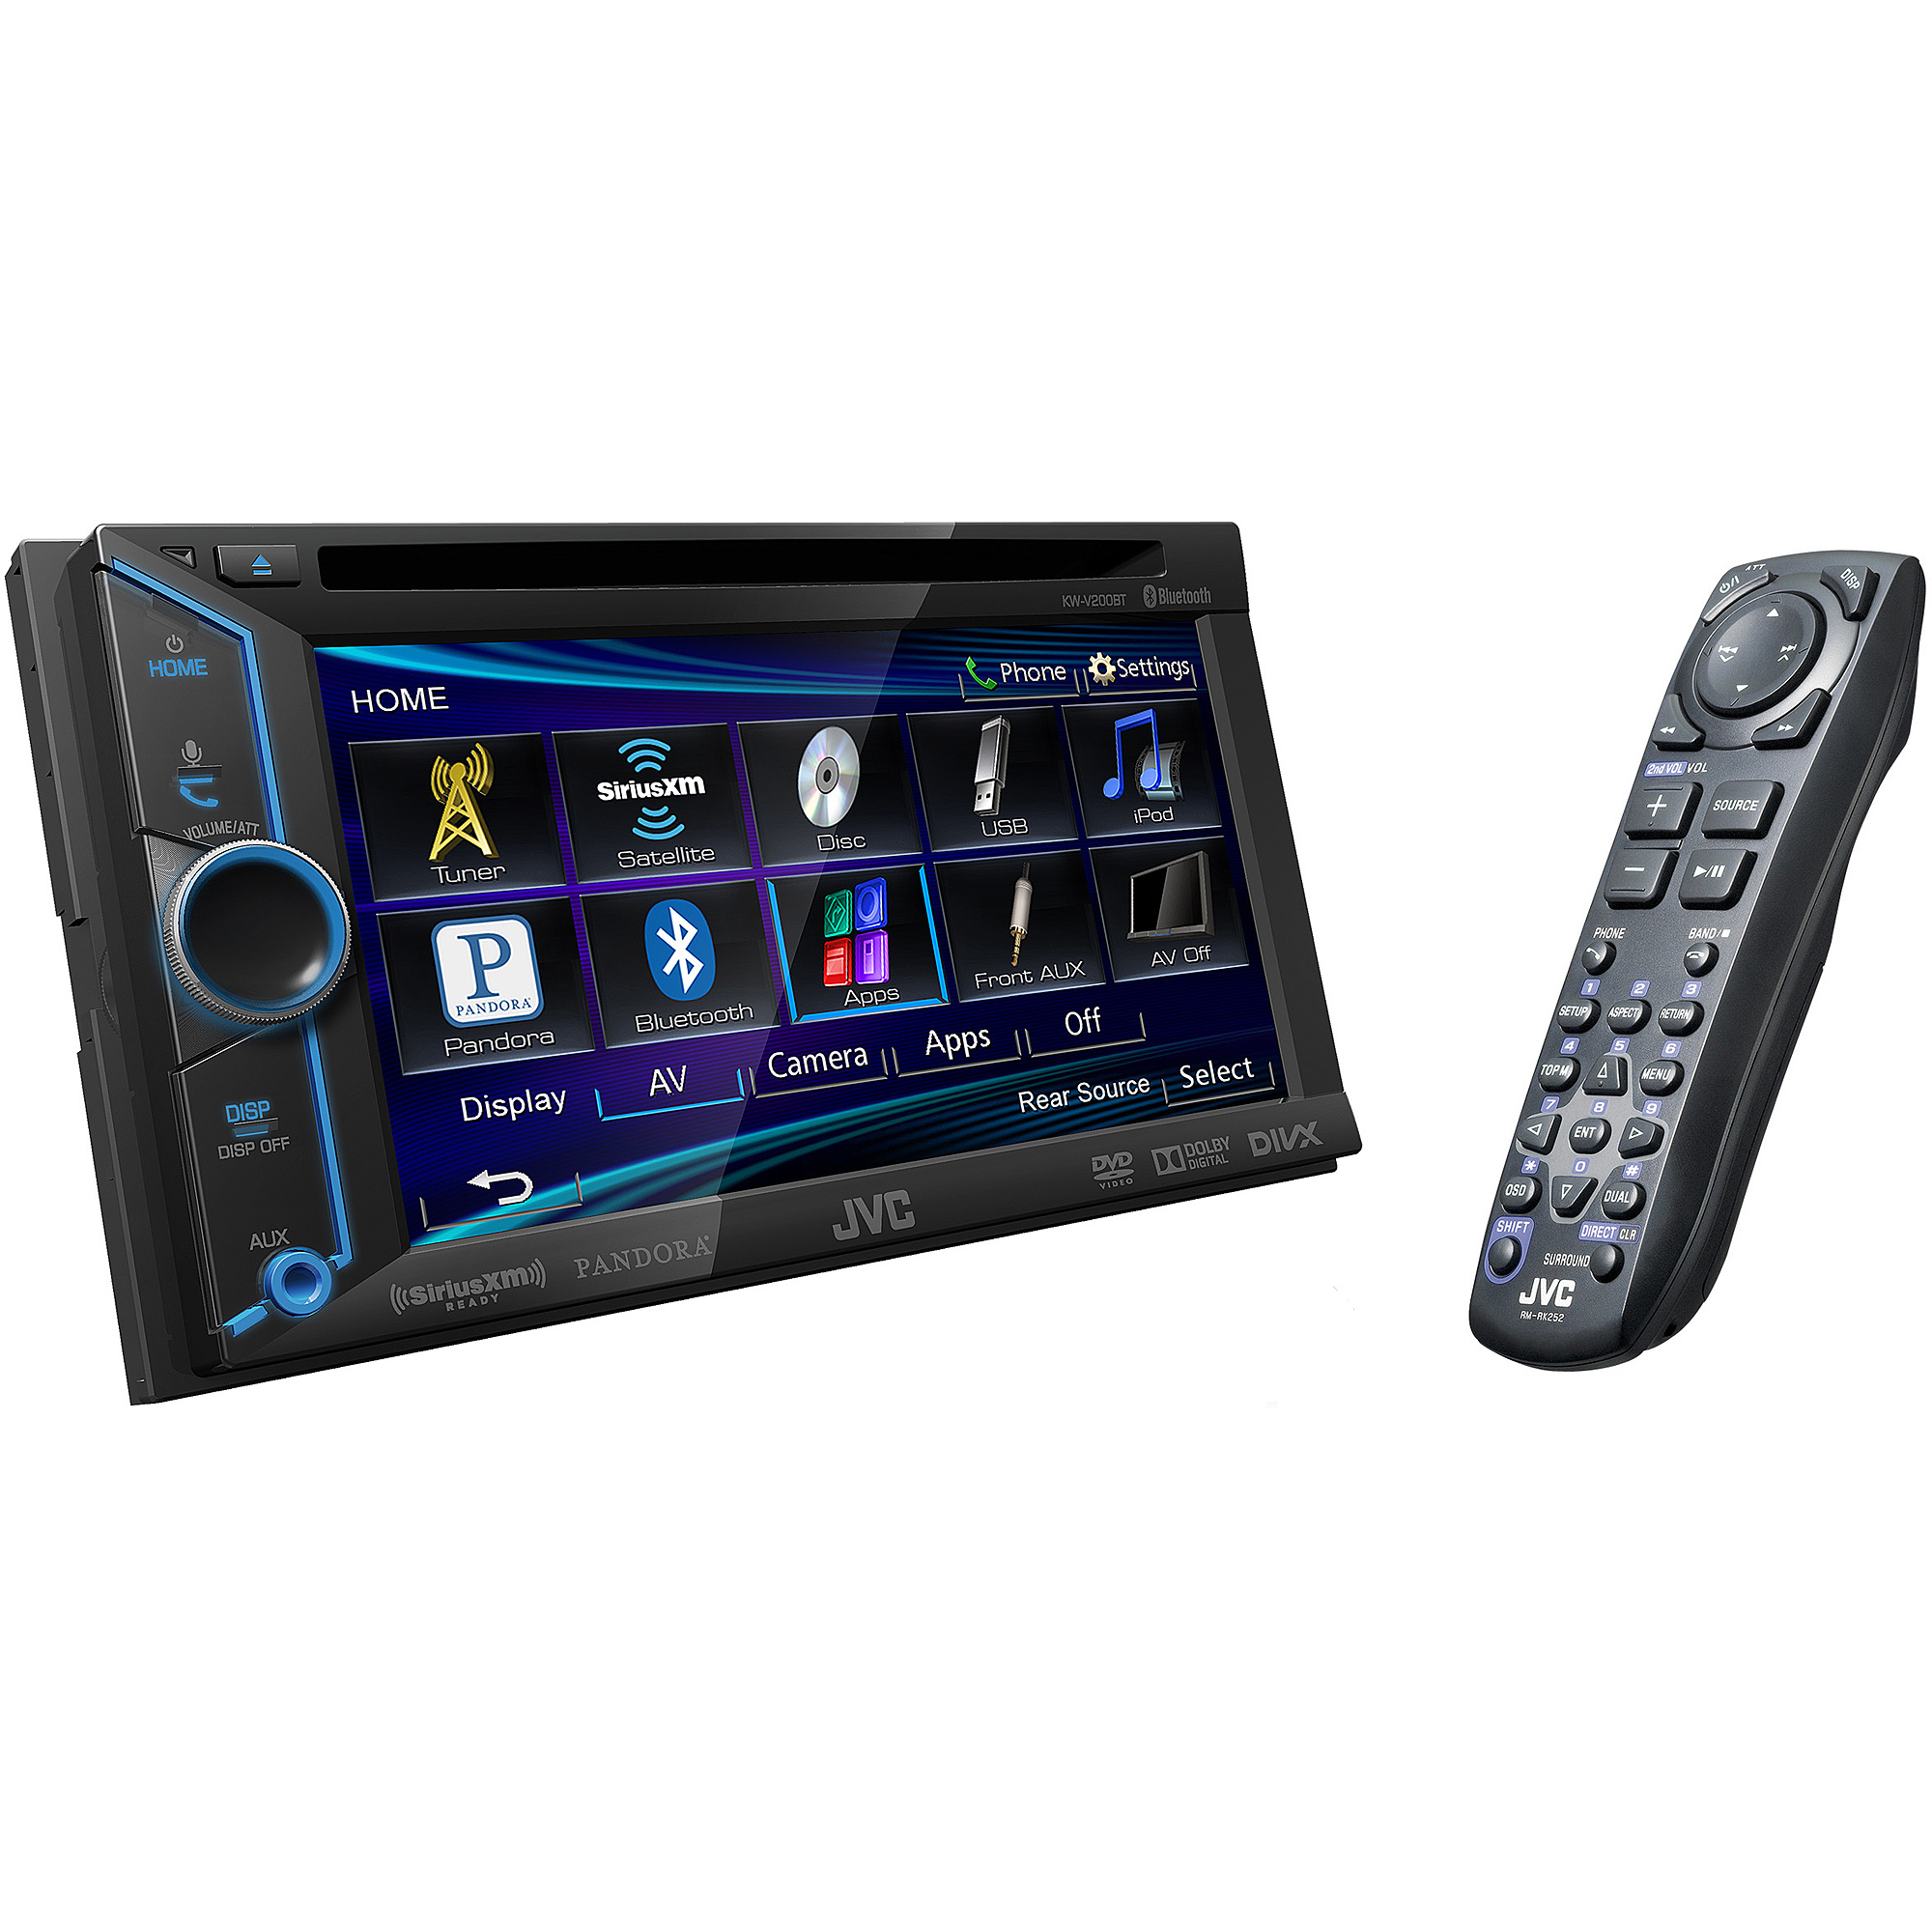 JVC Mobile KW-200BT DVD Receiver with Monitor